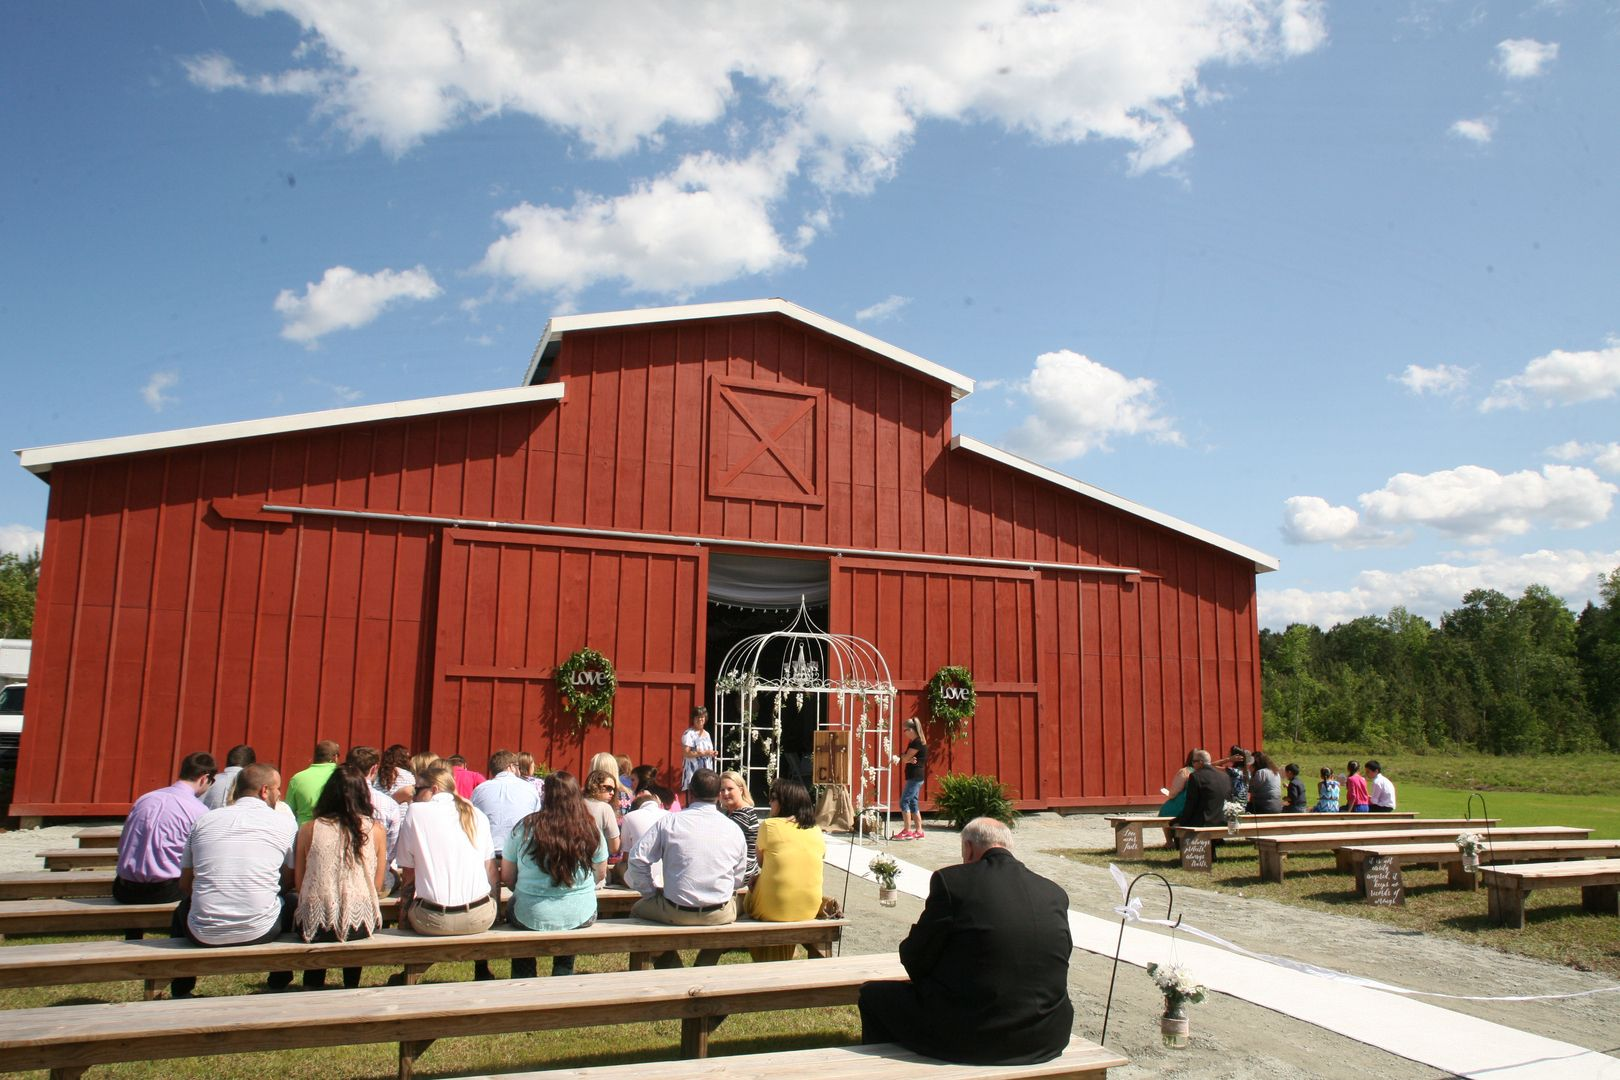 top ten wedding venues in cape town%0A Wedding venue The Wedding Barn New Bern NC